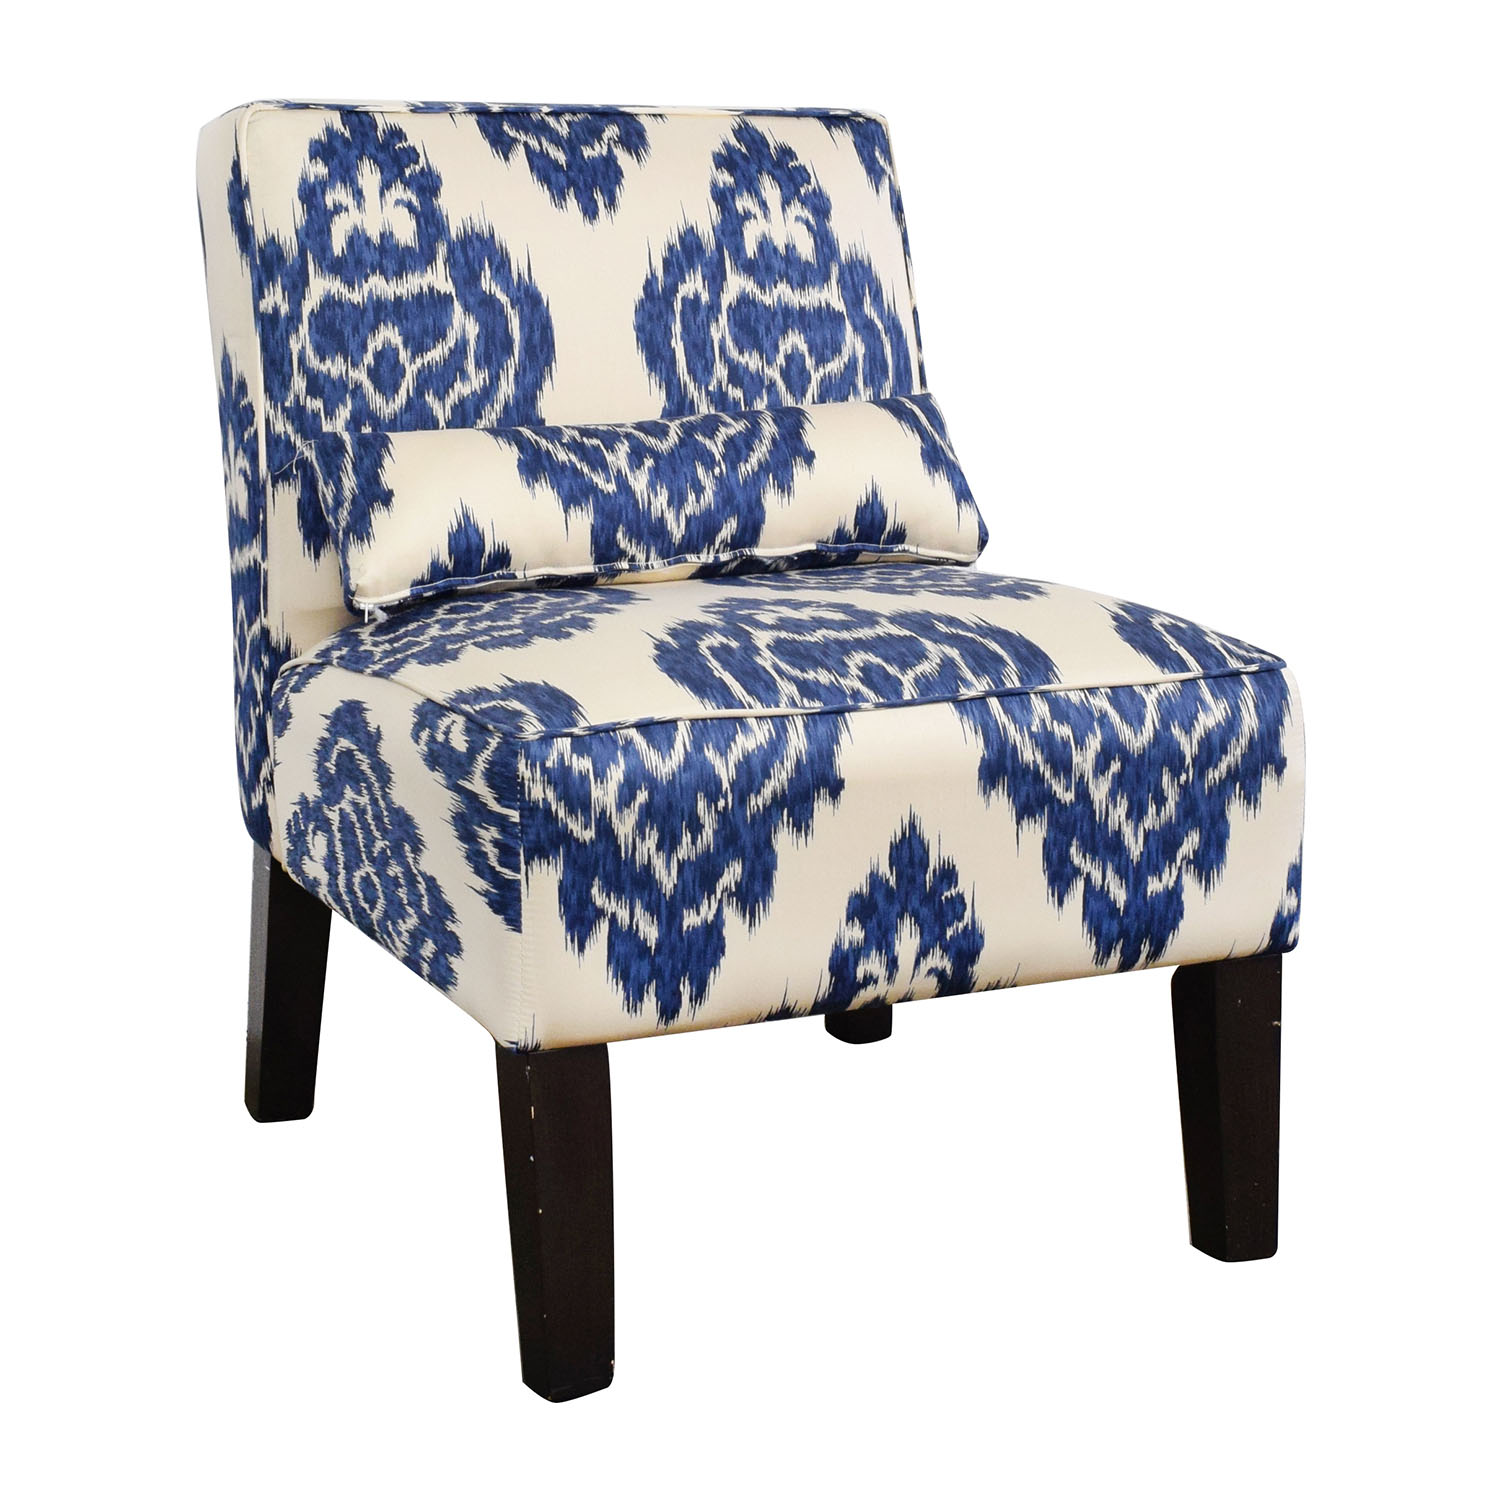 ... Overstock Overstock Blue And White Accent Chair Second Hand ...